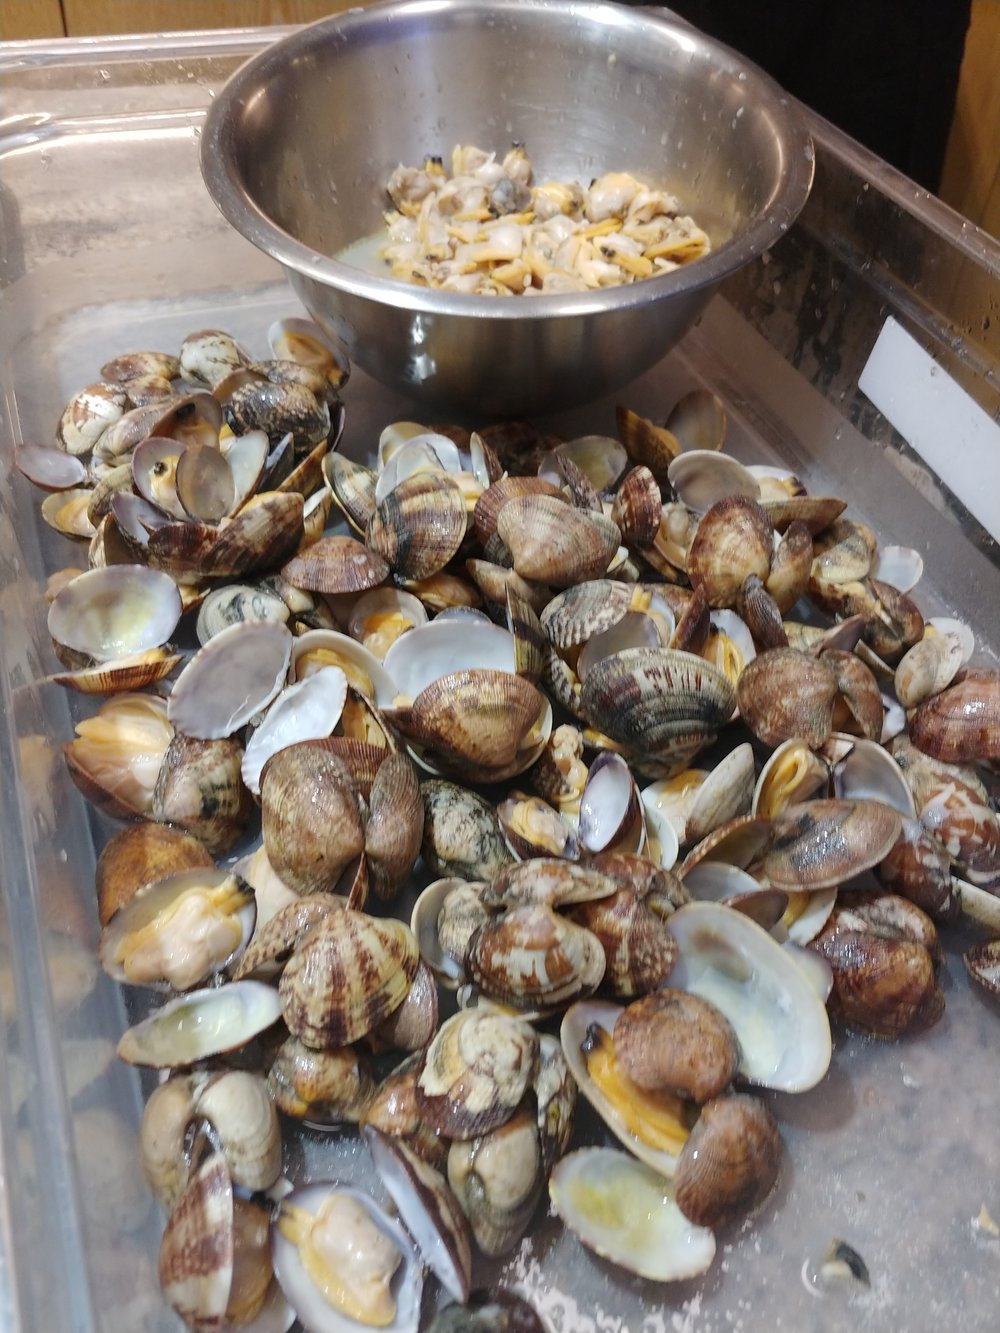 Pick - Most of the clams out of their shells. Keeping a few in shell for garnish.